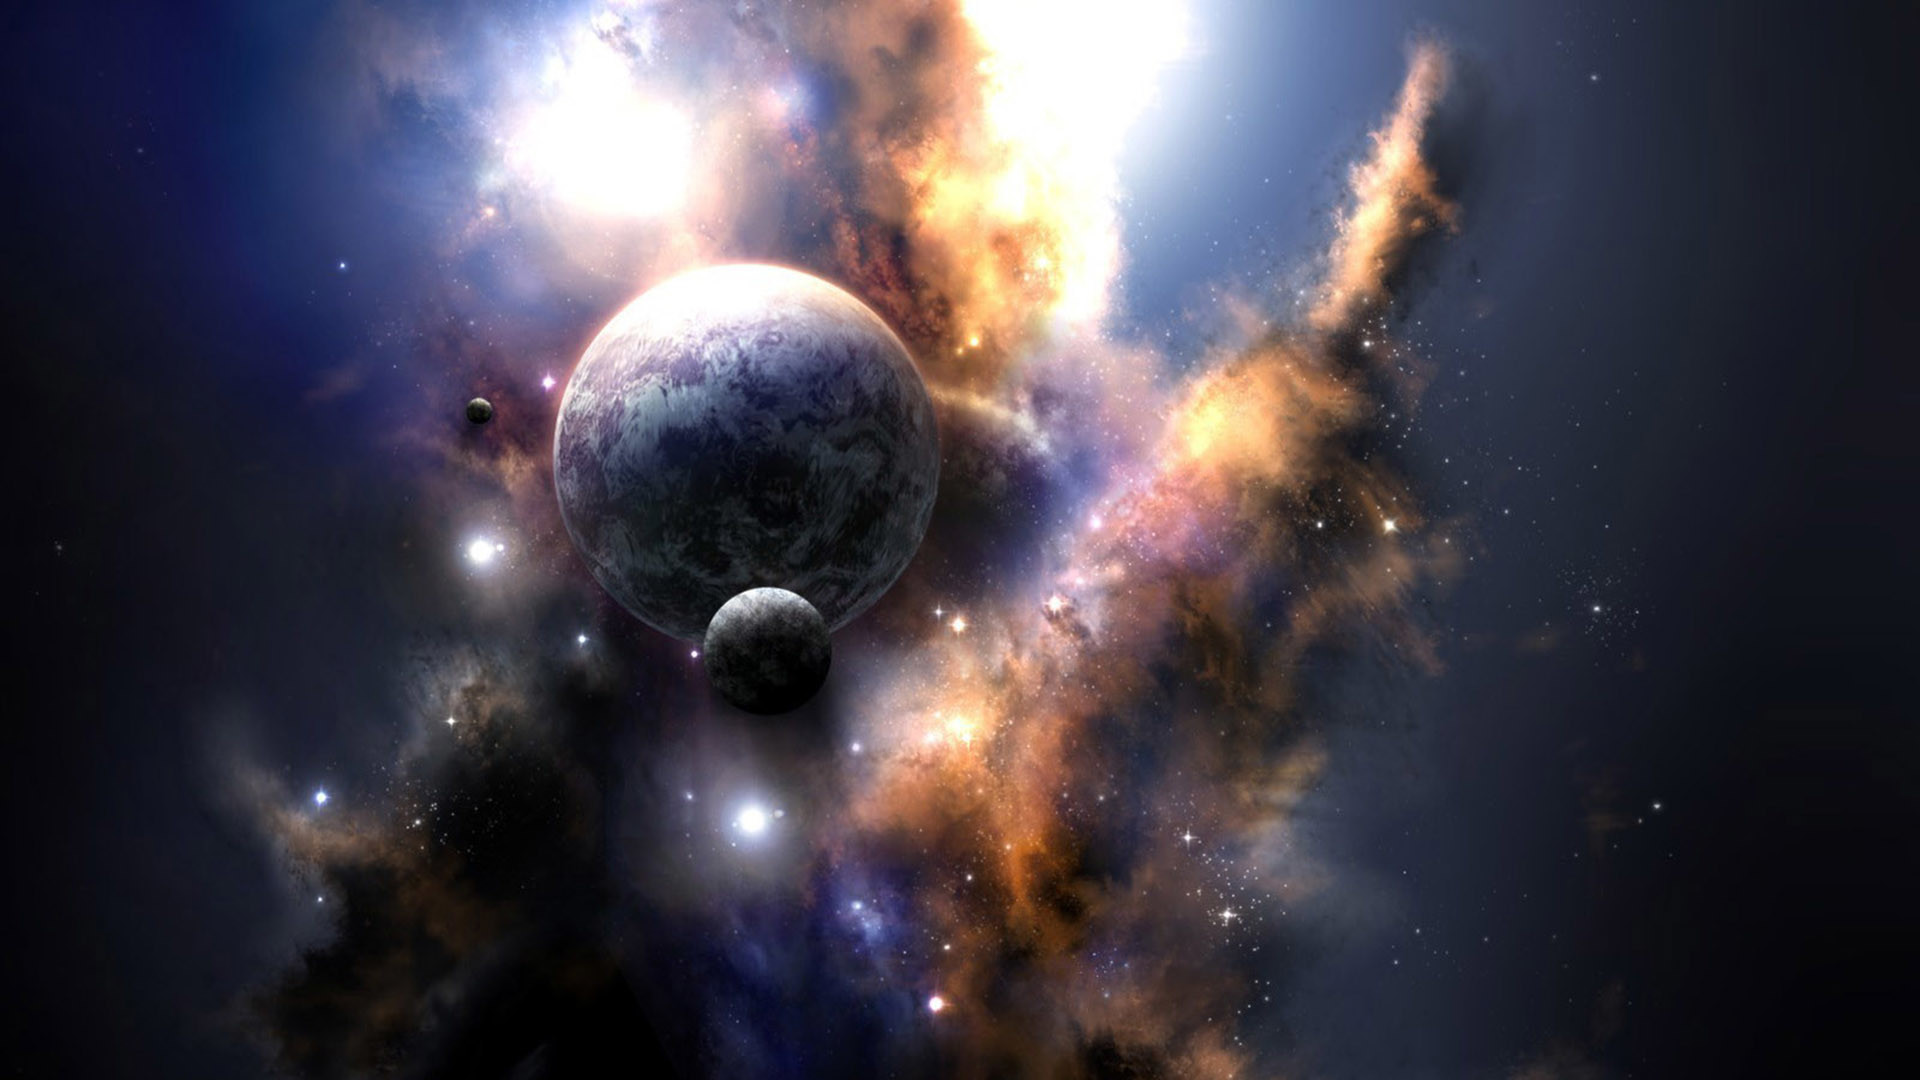 Wallpapers Epic Space Art | #933825 #epic space